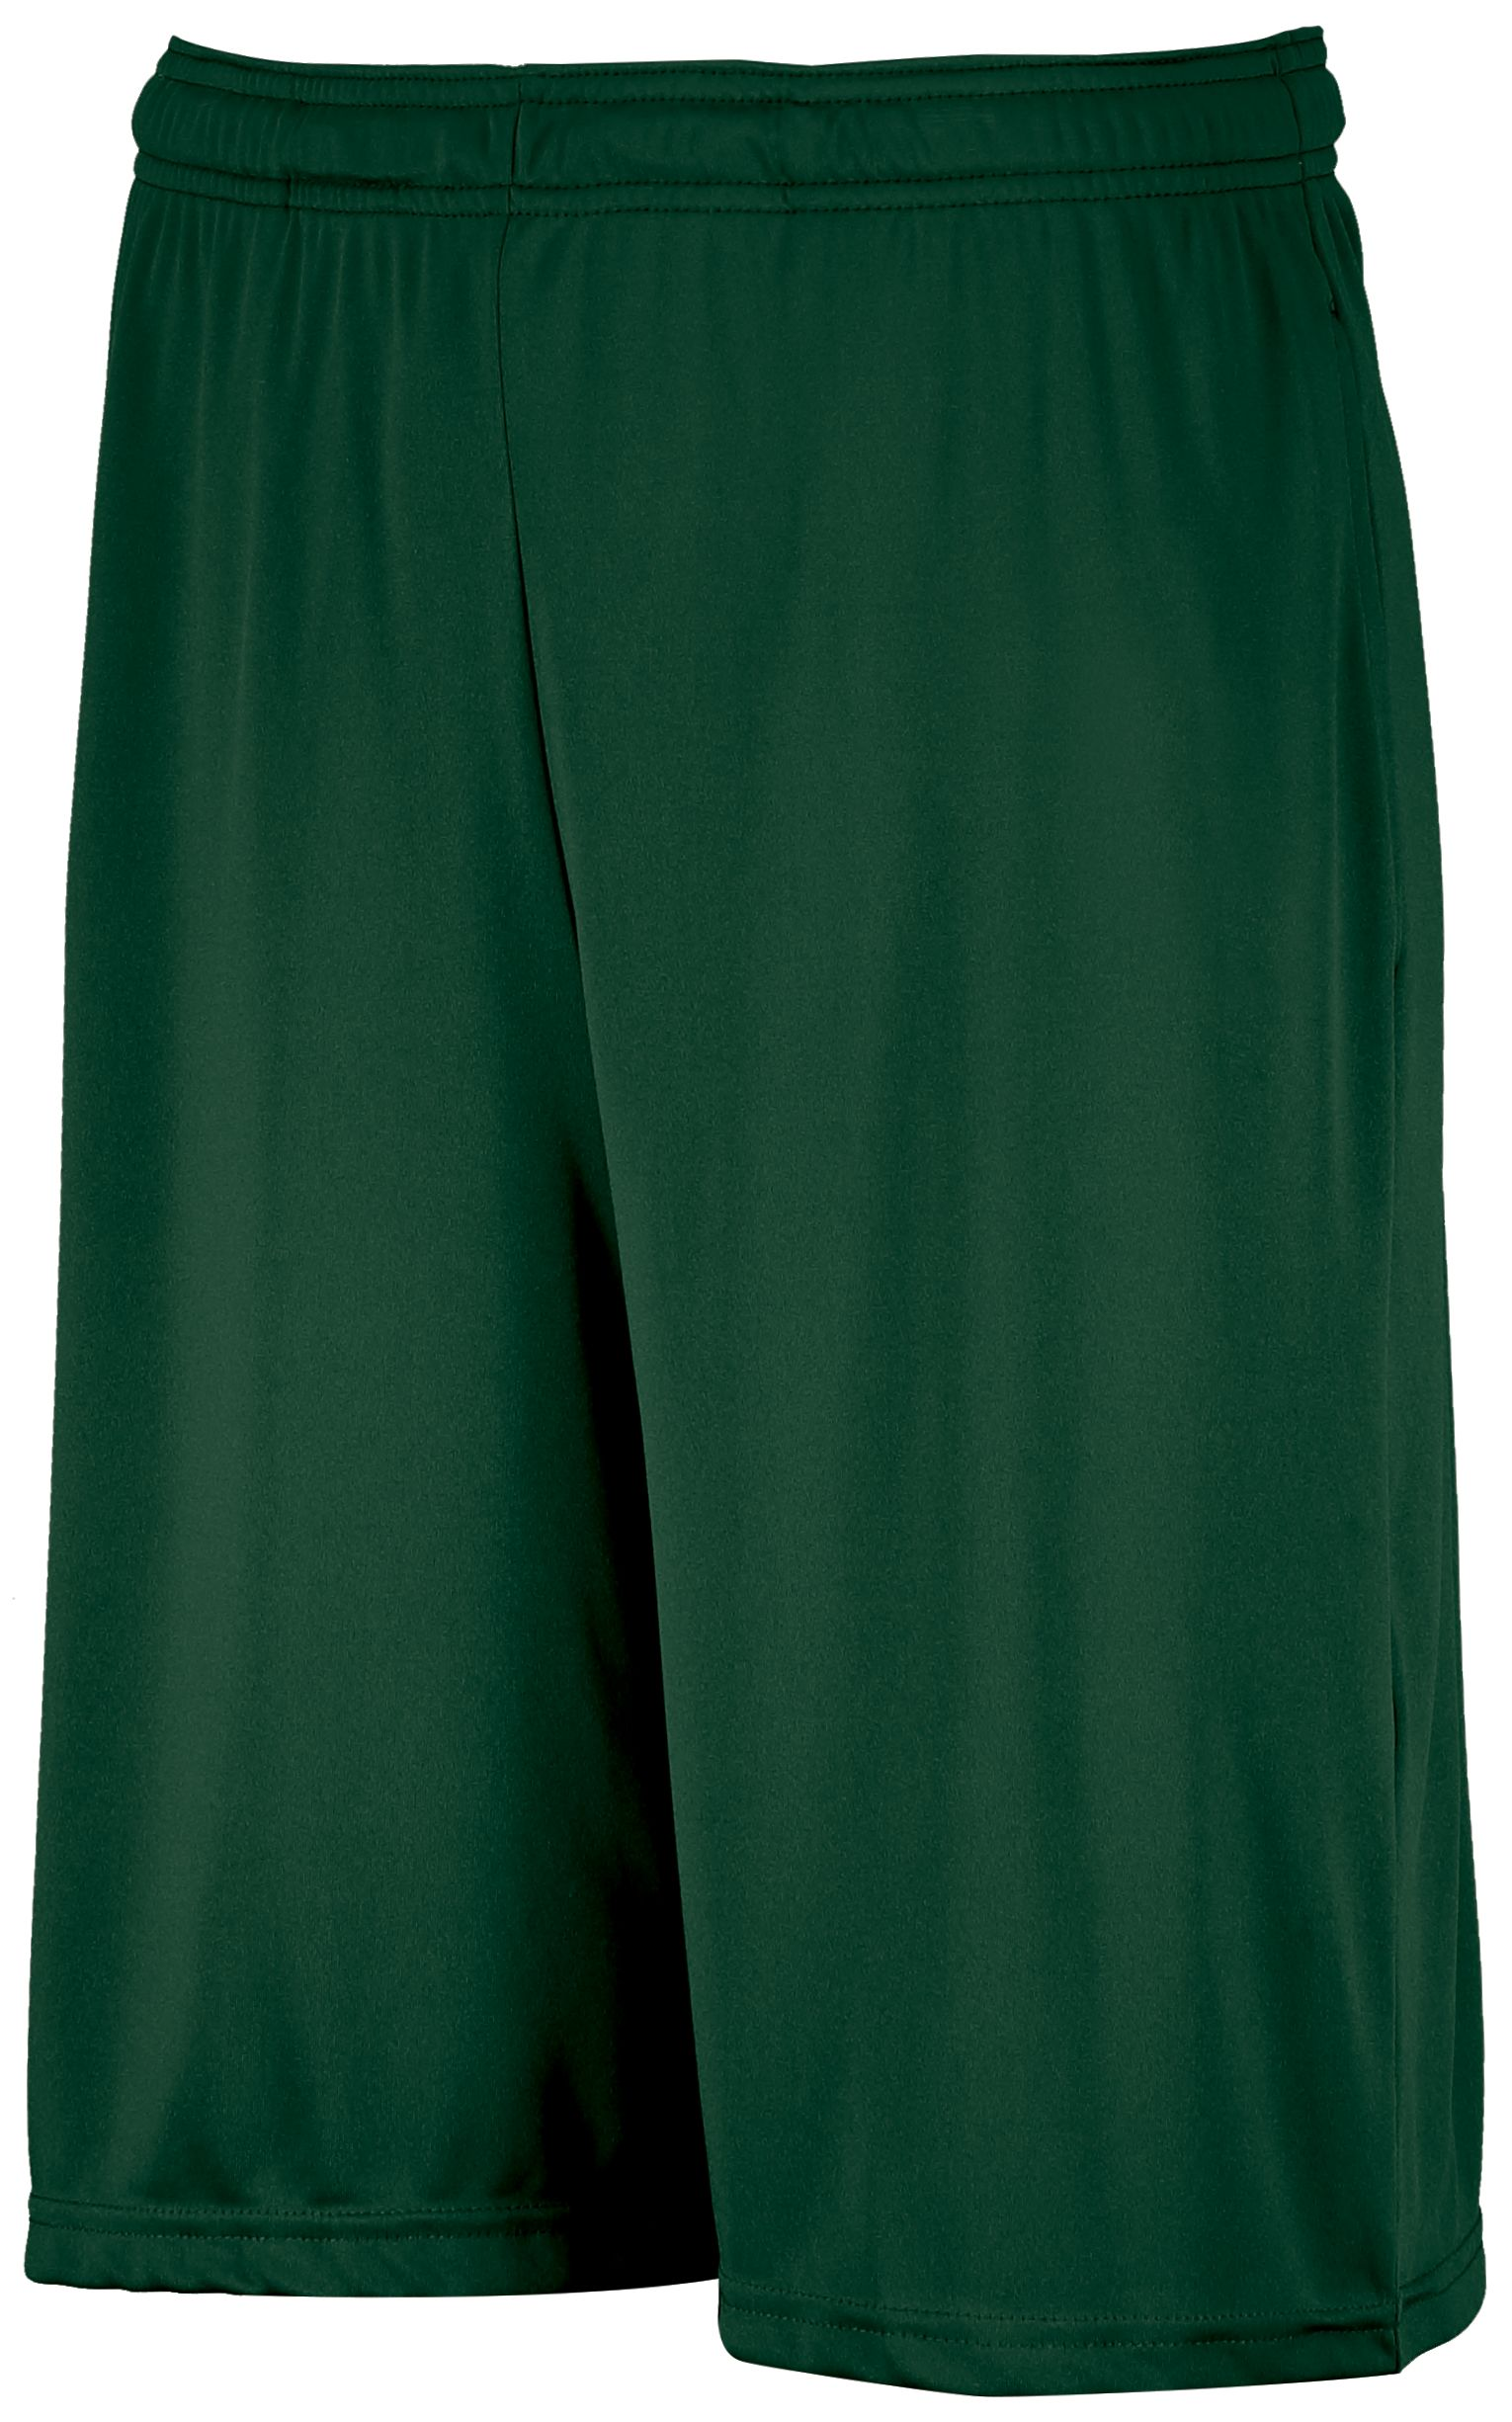 Dri-Power® Essential Performance Shorts With Pockets  - Dark Green